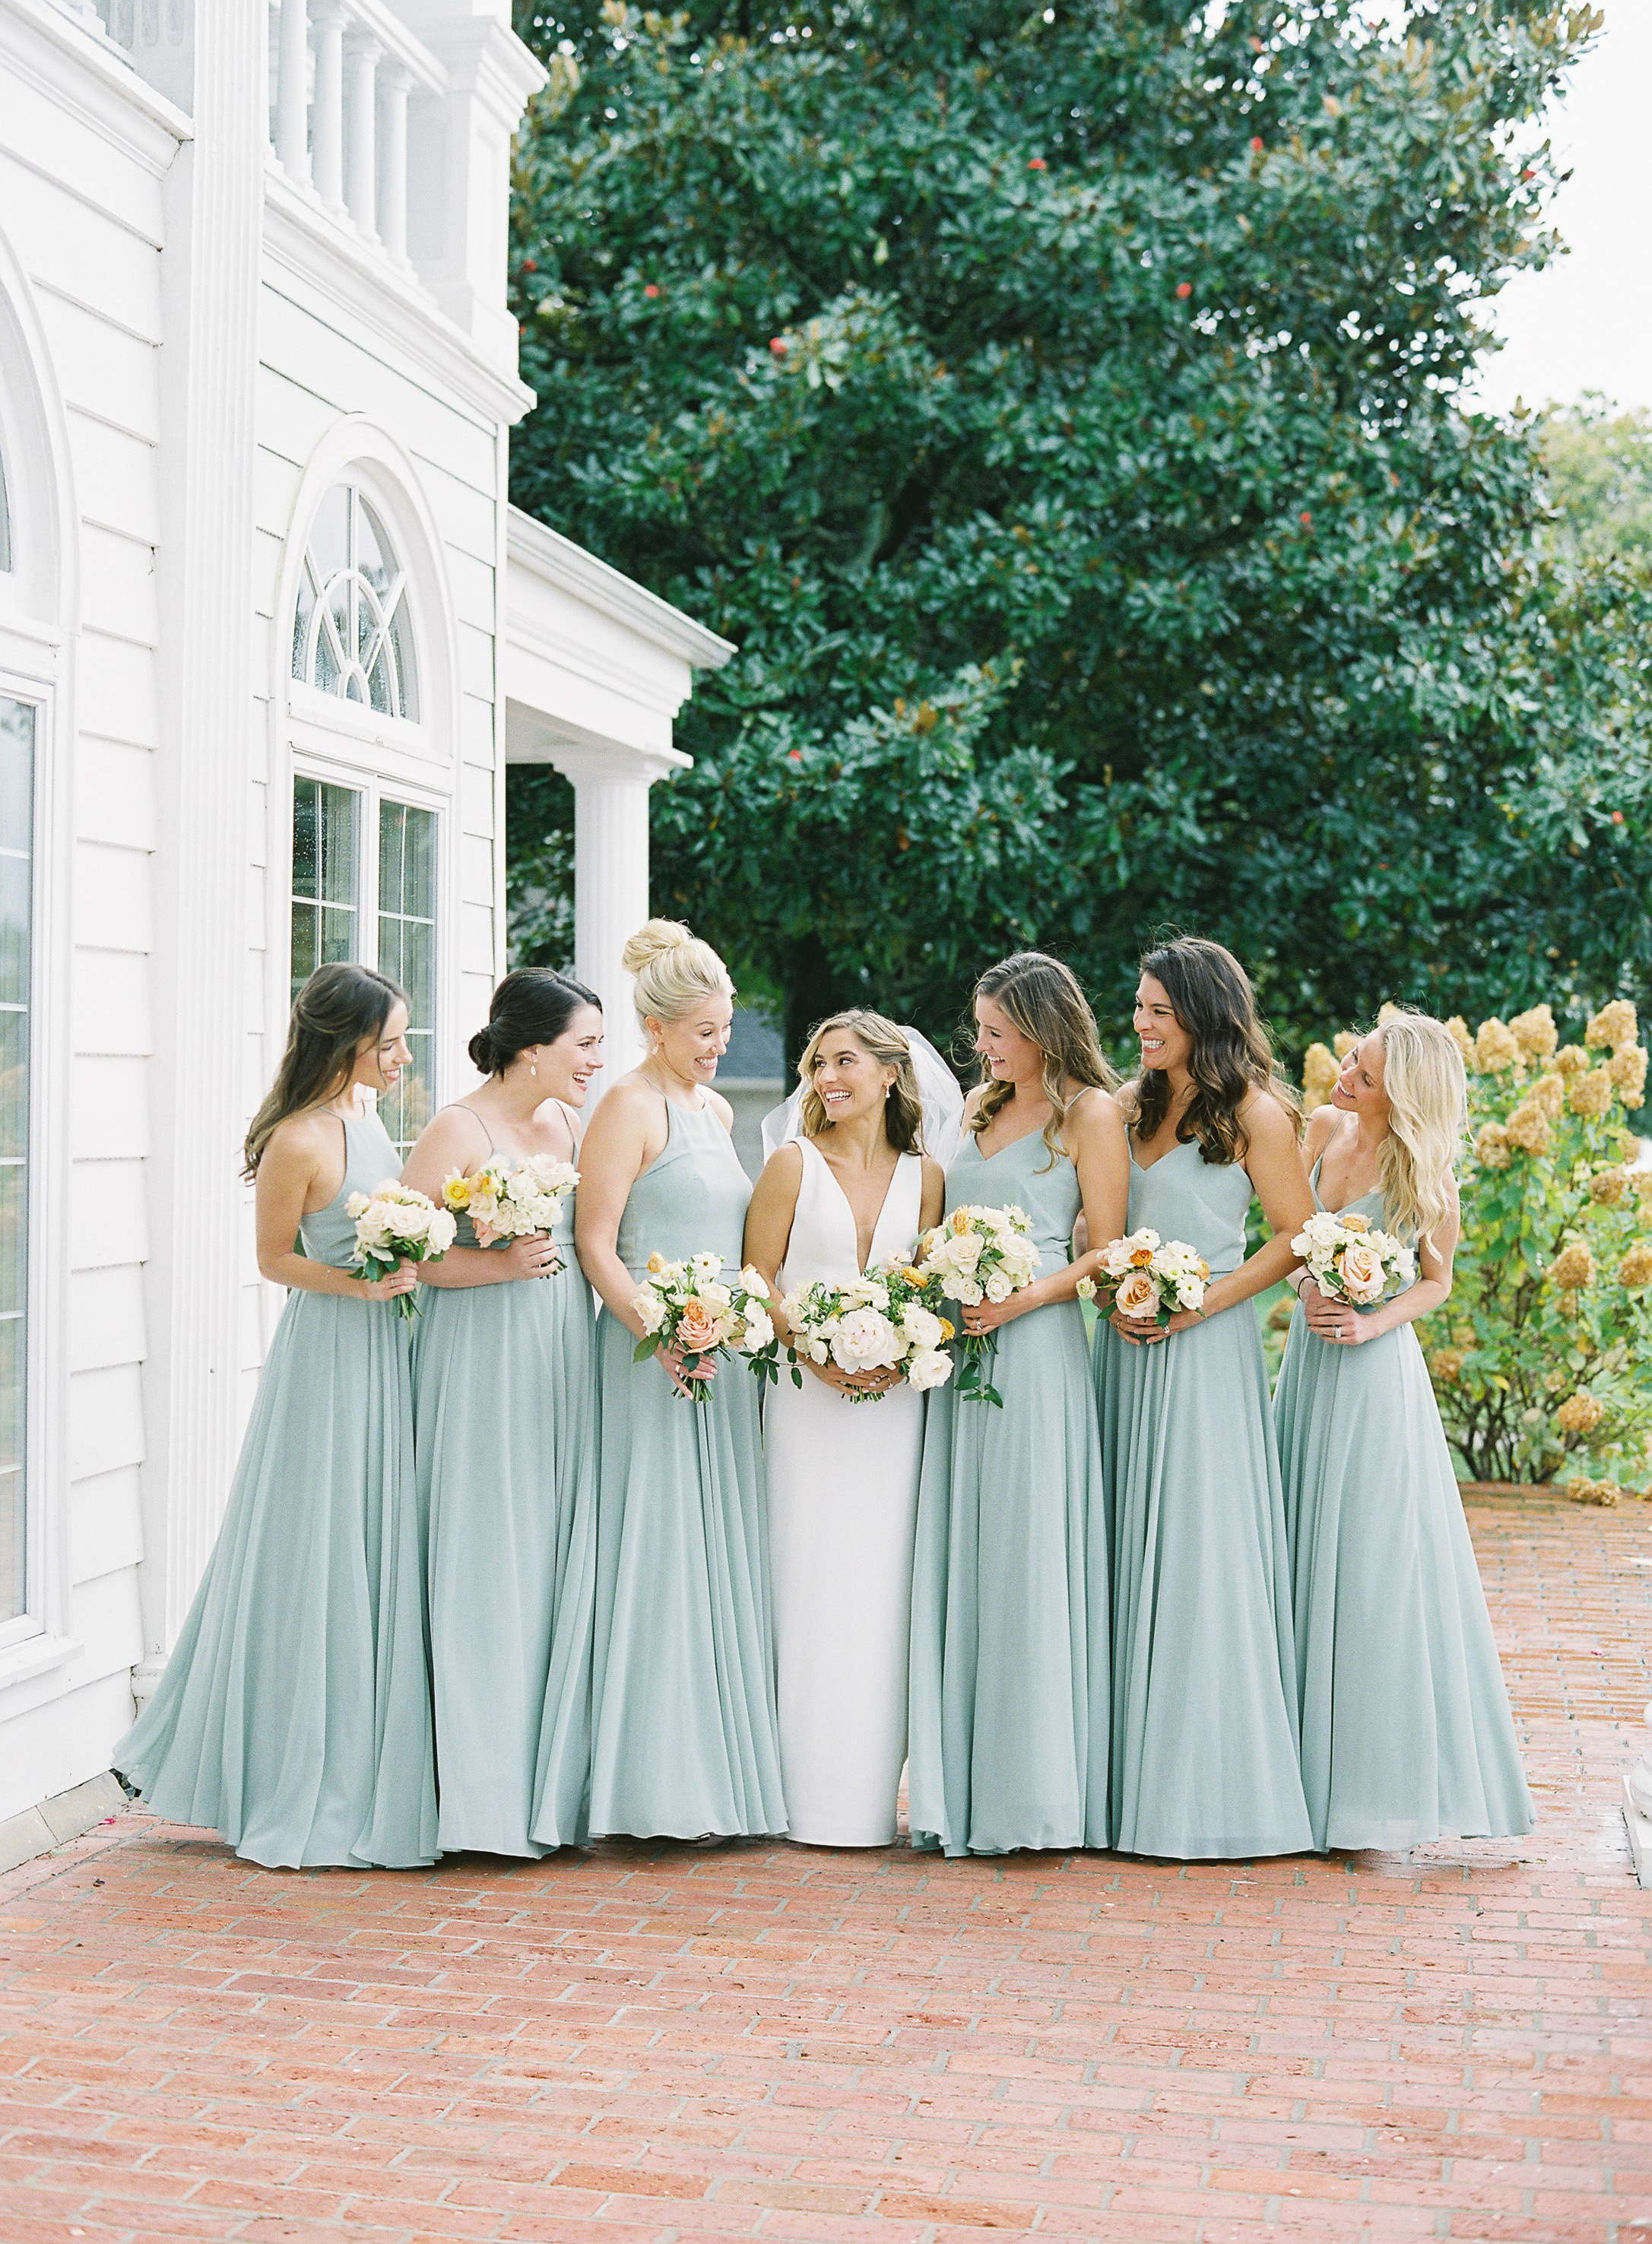 lauren alex wedding bridesmaids in sea foam dresses